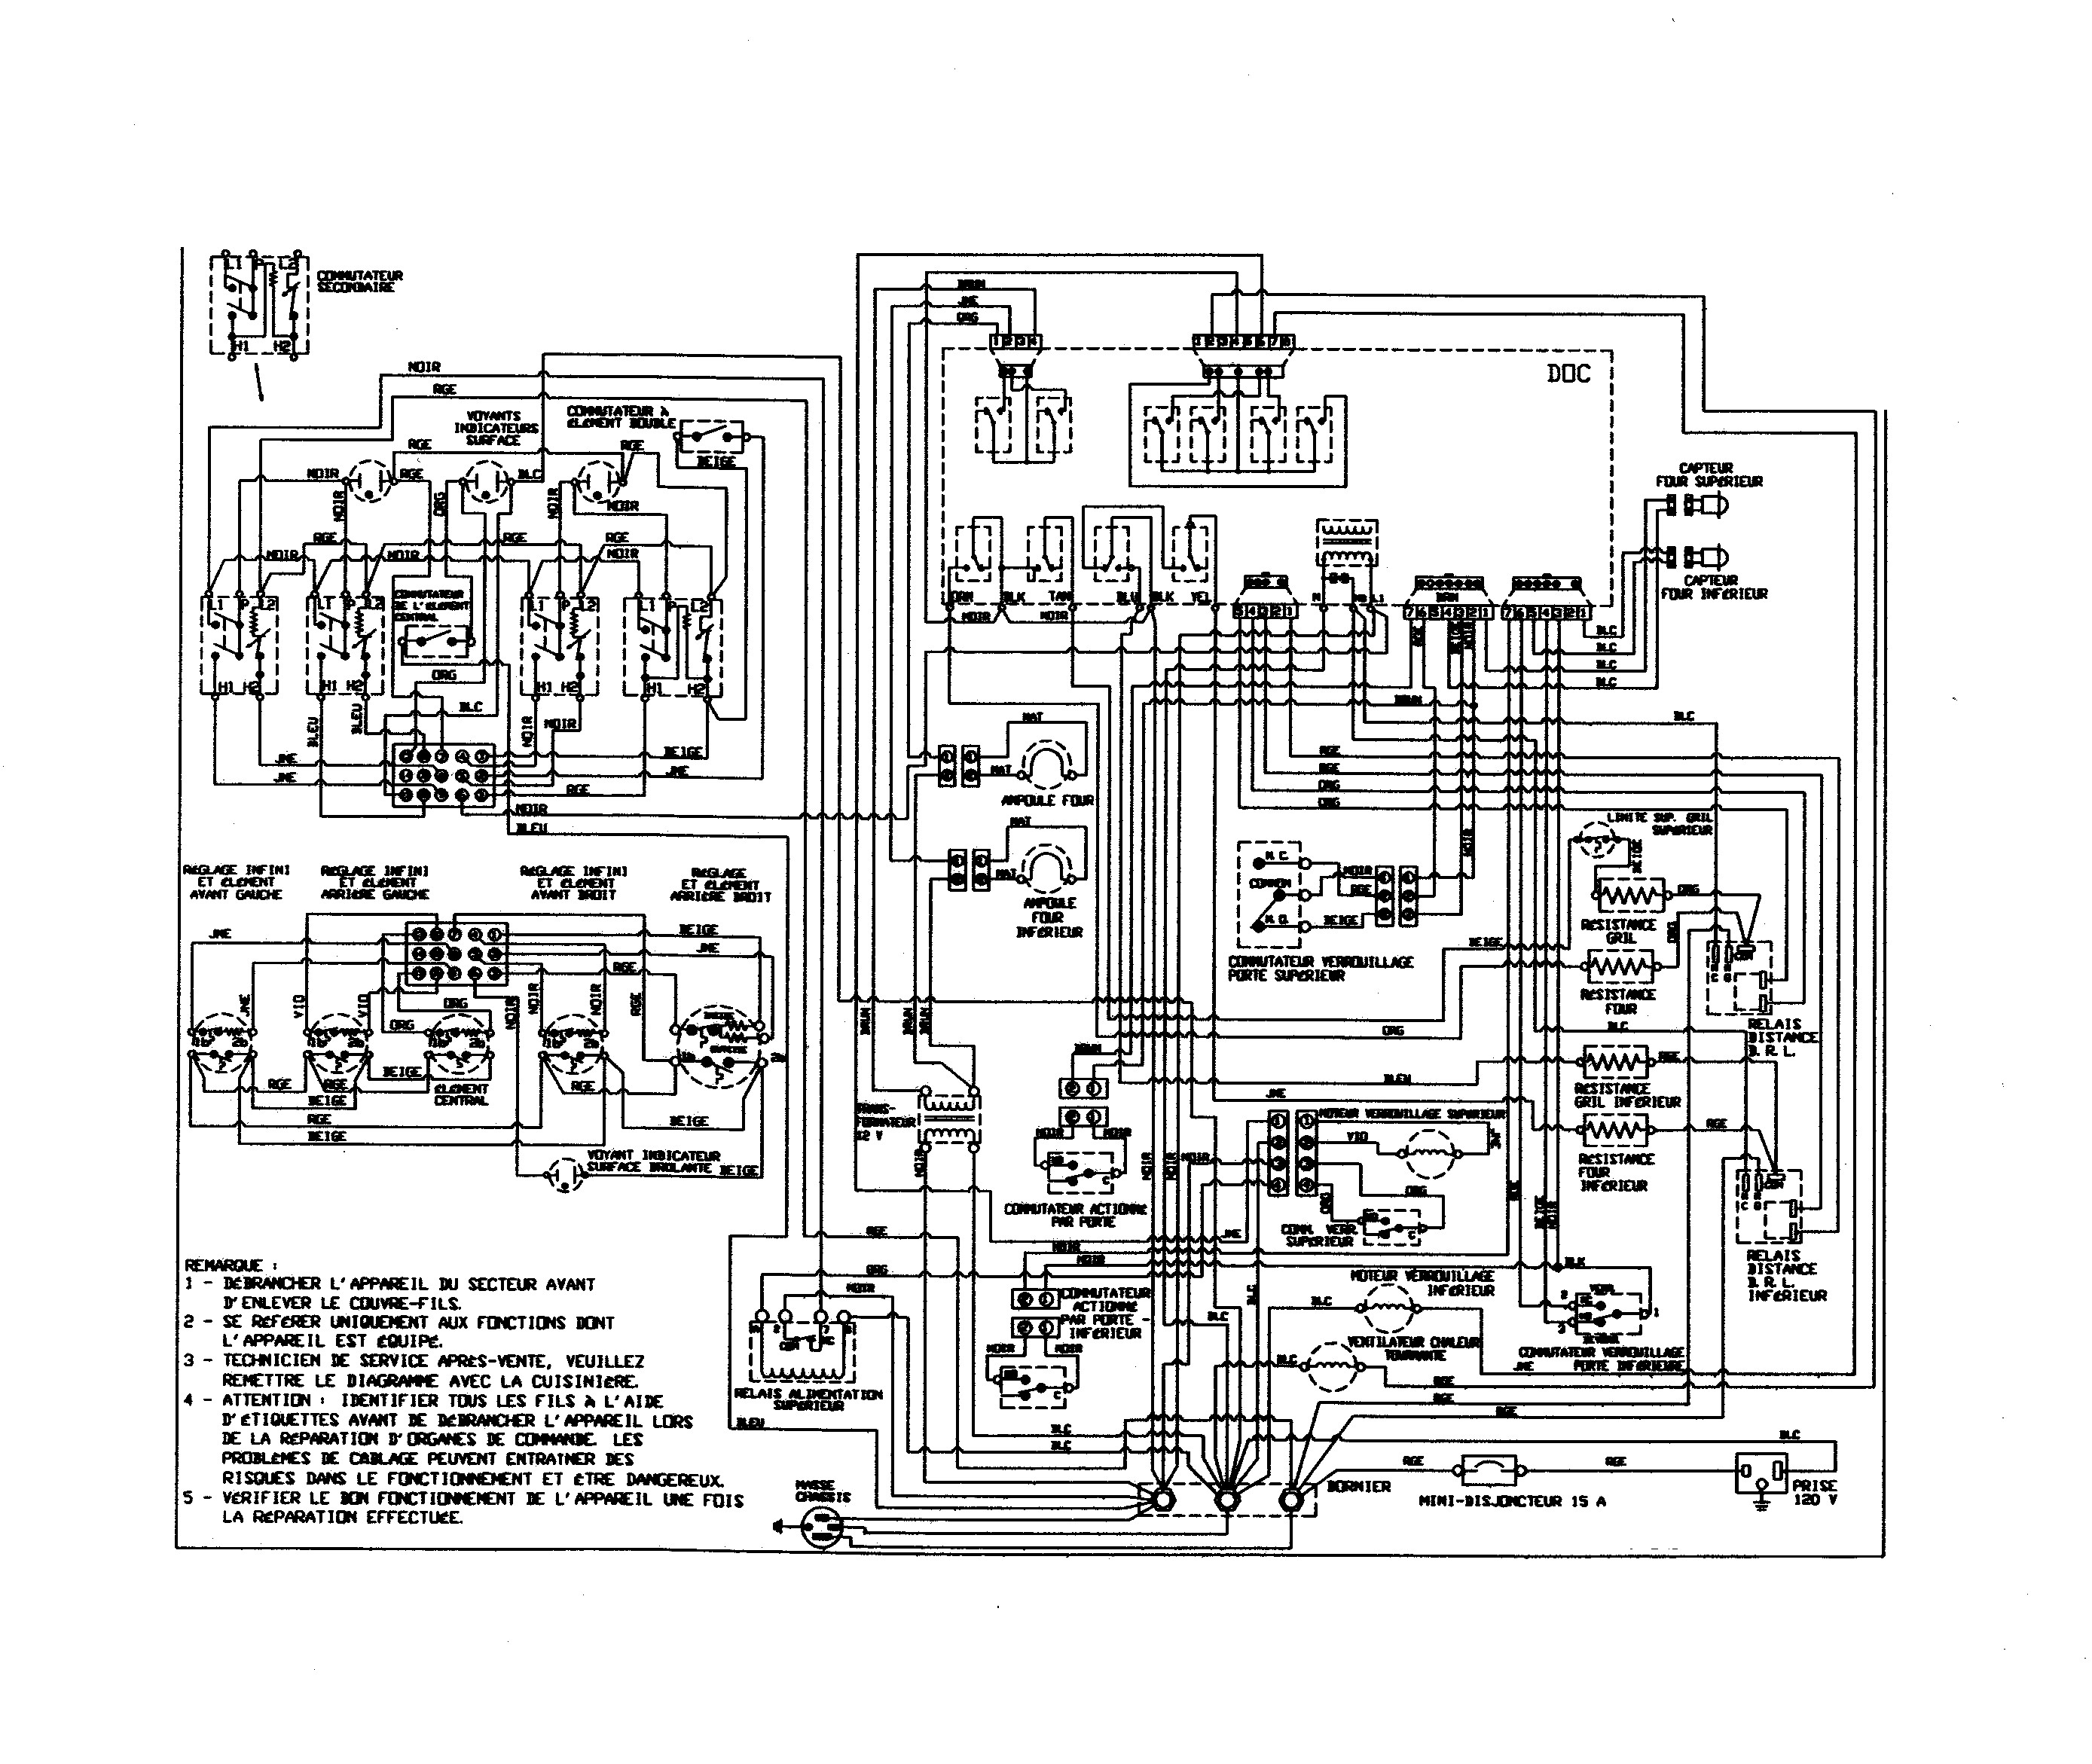 John Deere Z225 Wiring Diagram - Wiring Data